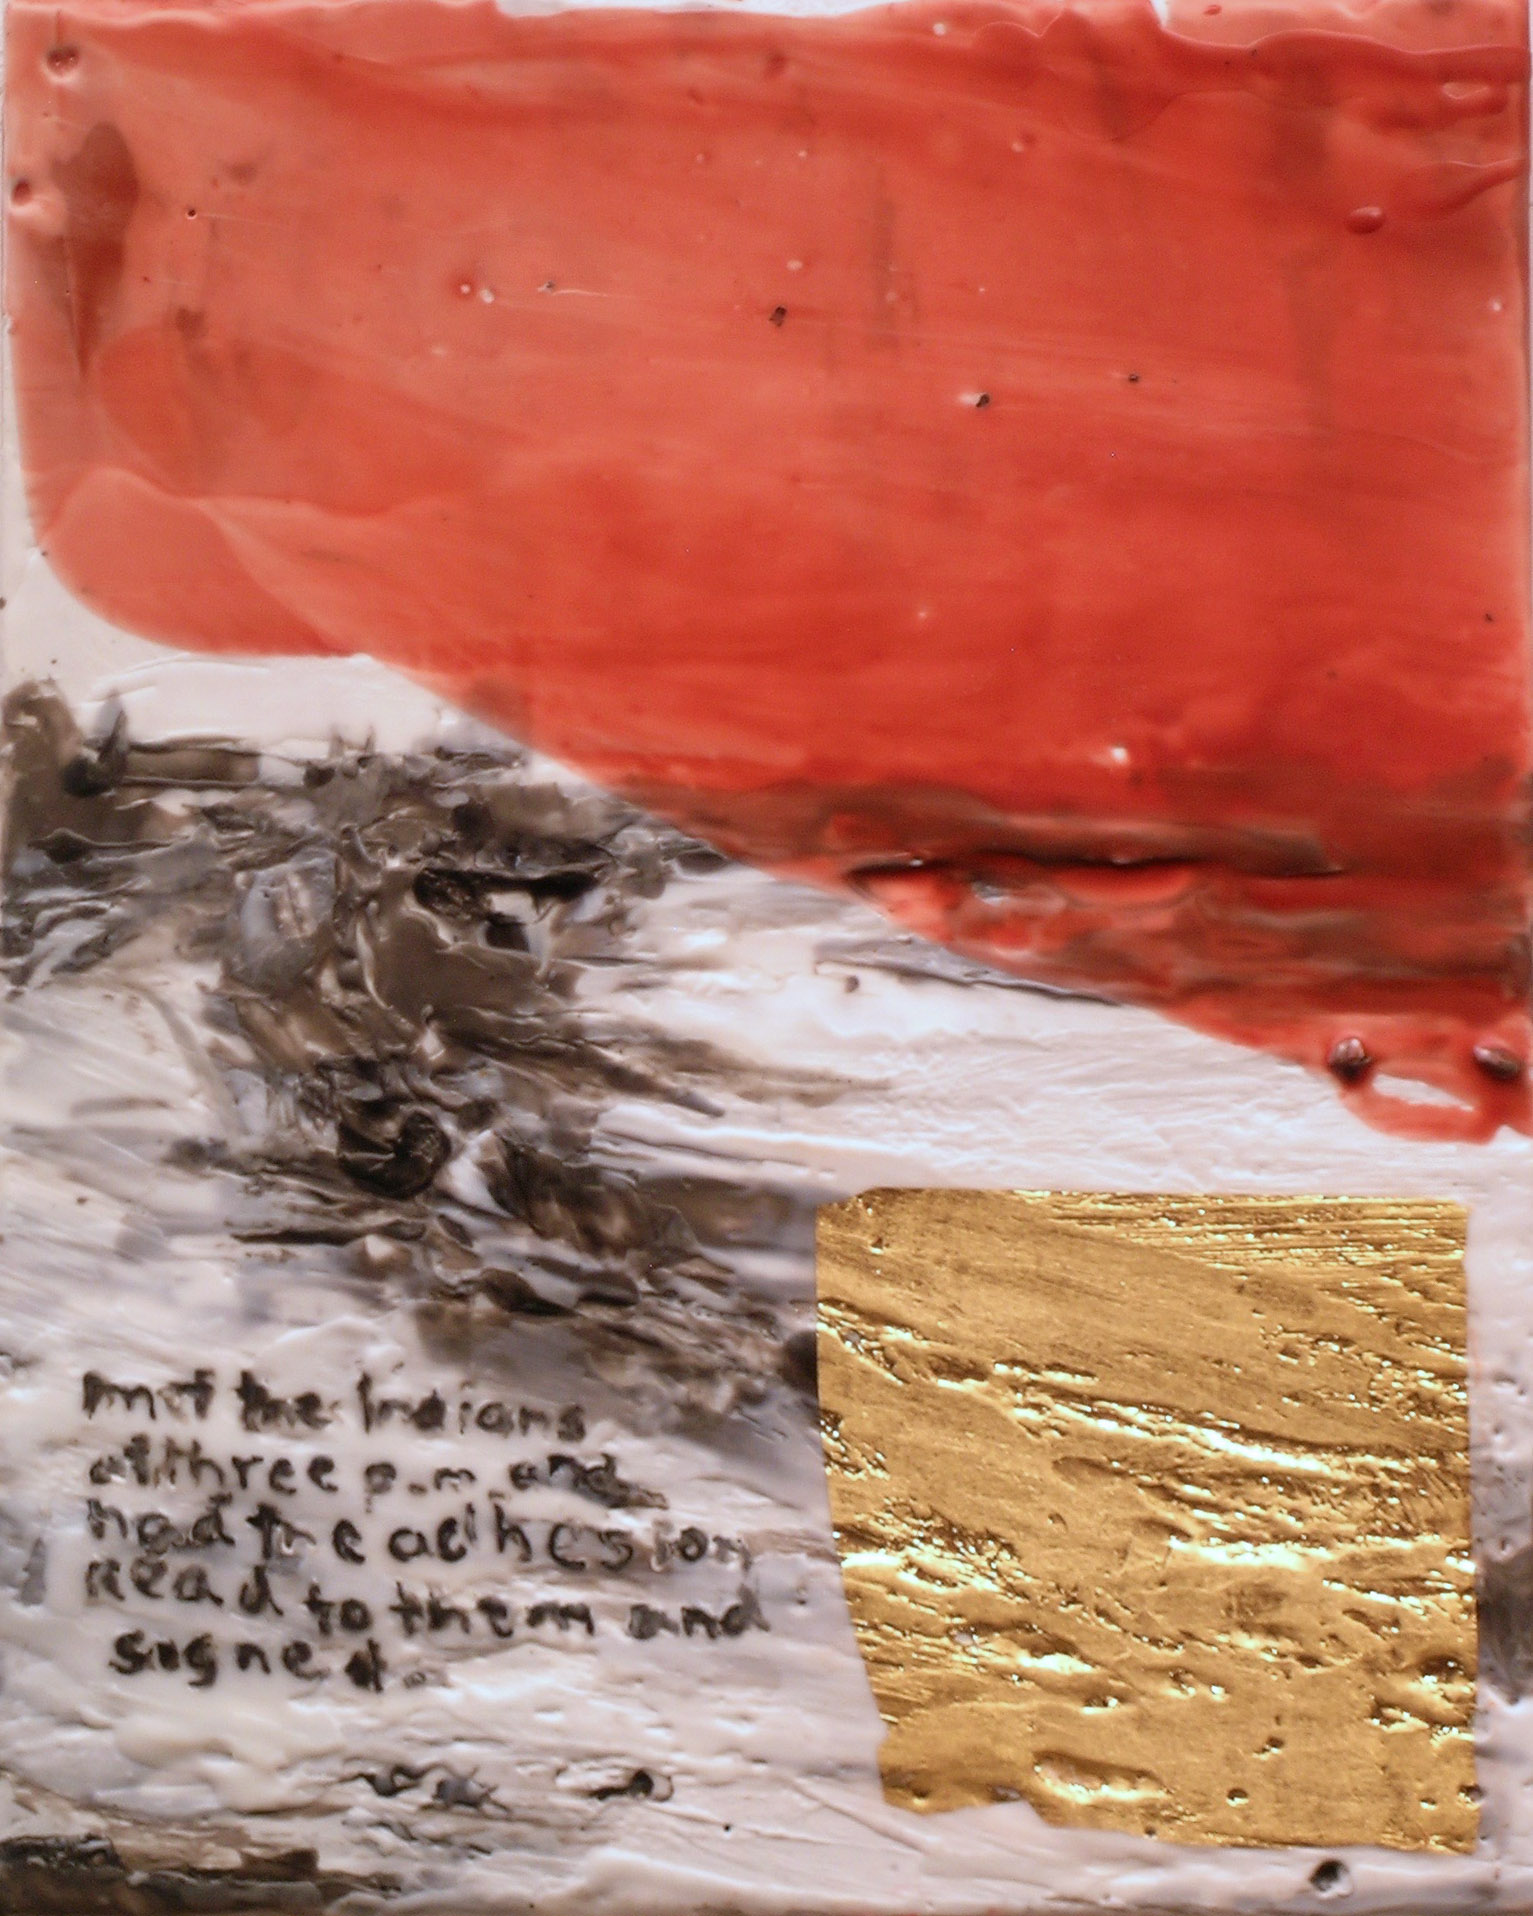 TS-070 Met the Indians at three P.M. and had the adhesion read to them and signed, 2016, mixed media, encaustic, 10x8.jpg